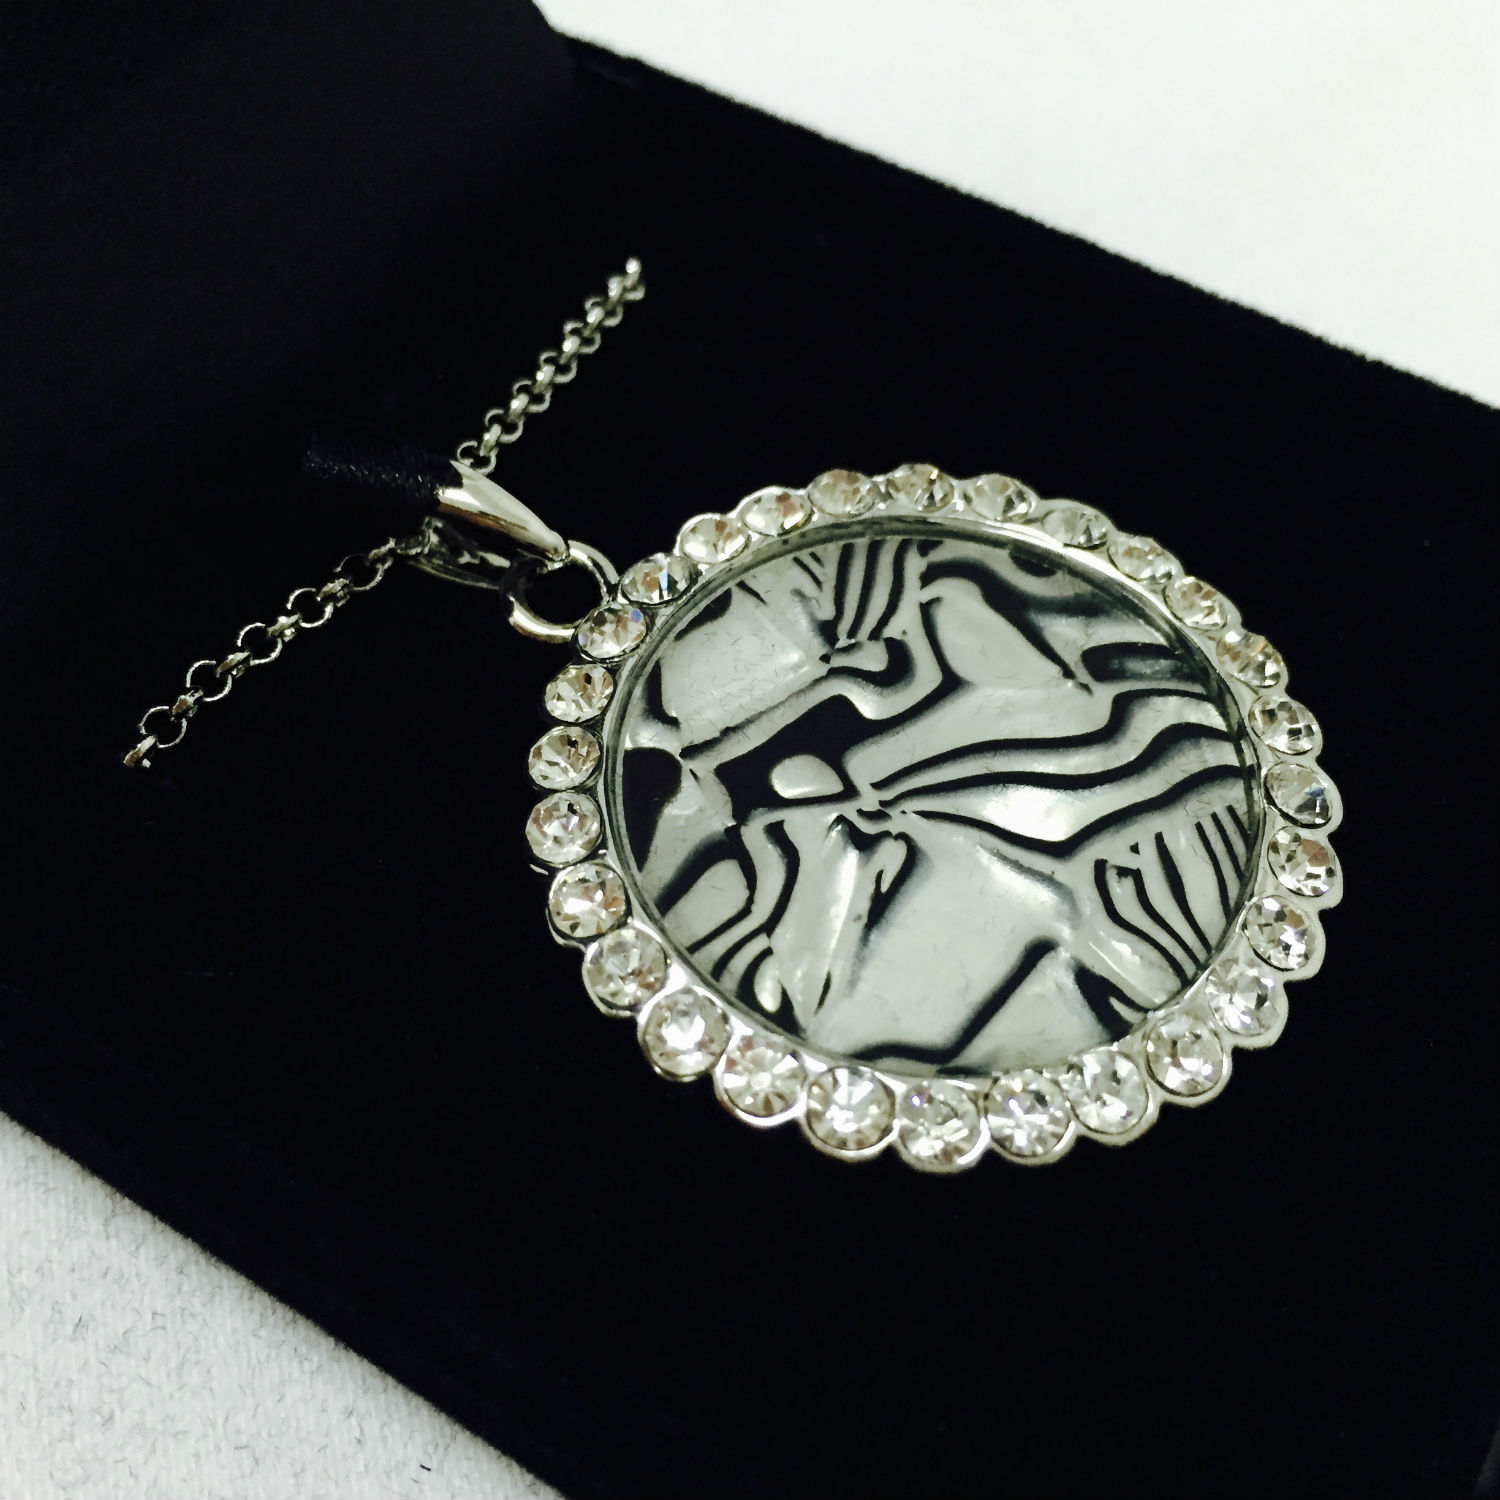 - NFC Necklace Inlayed with Pearl and NTAG213